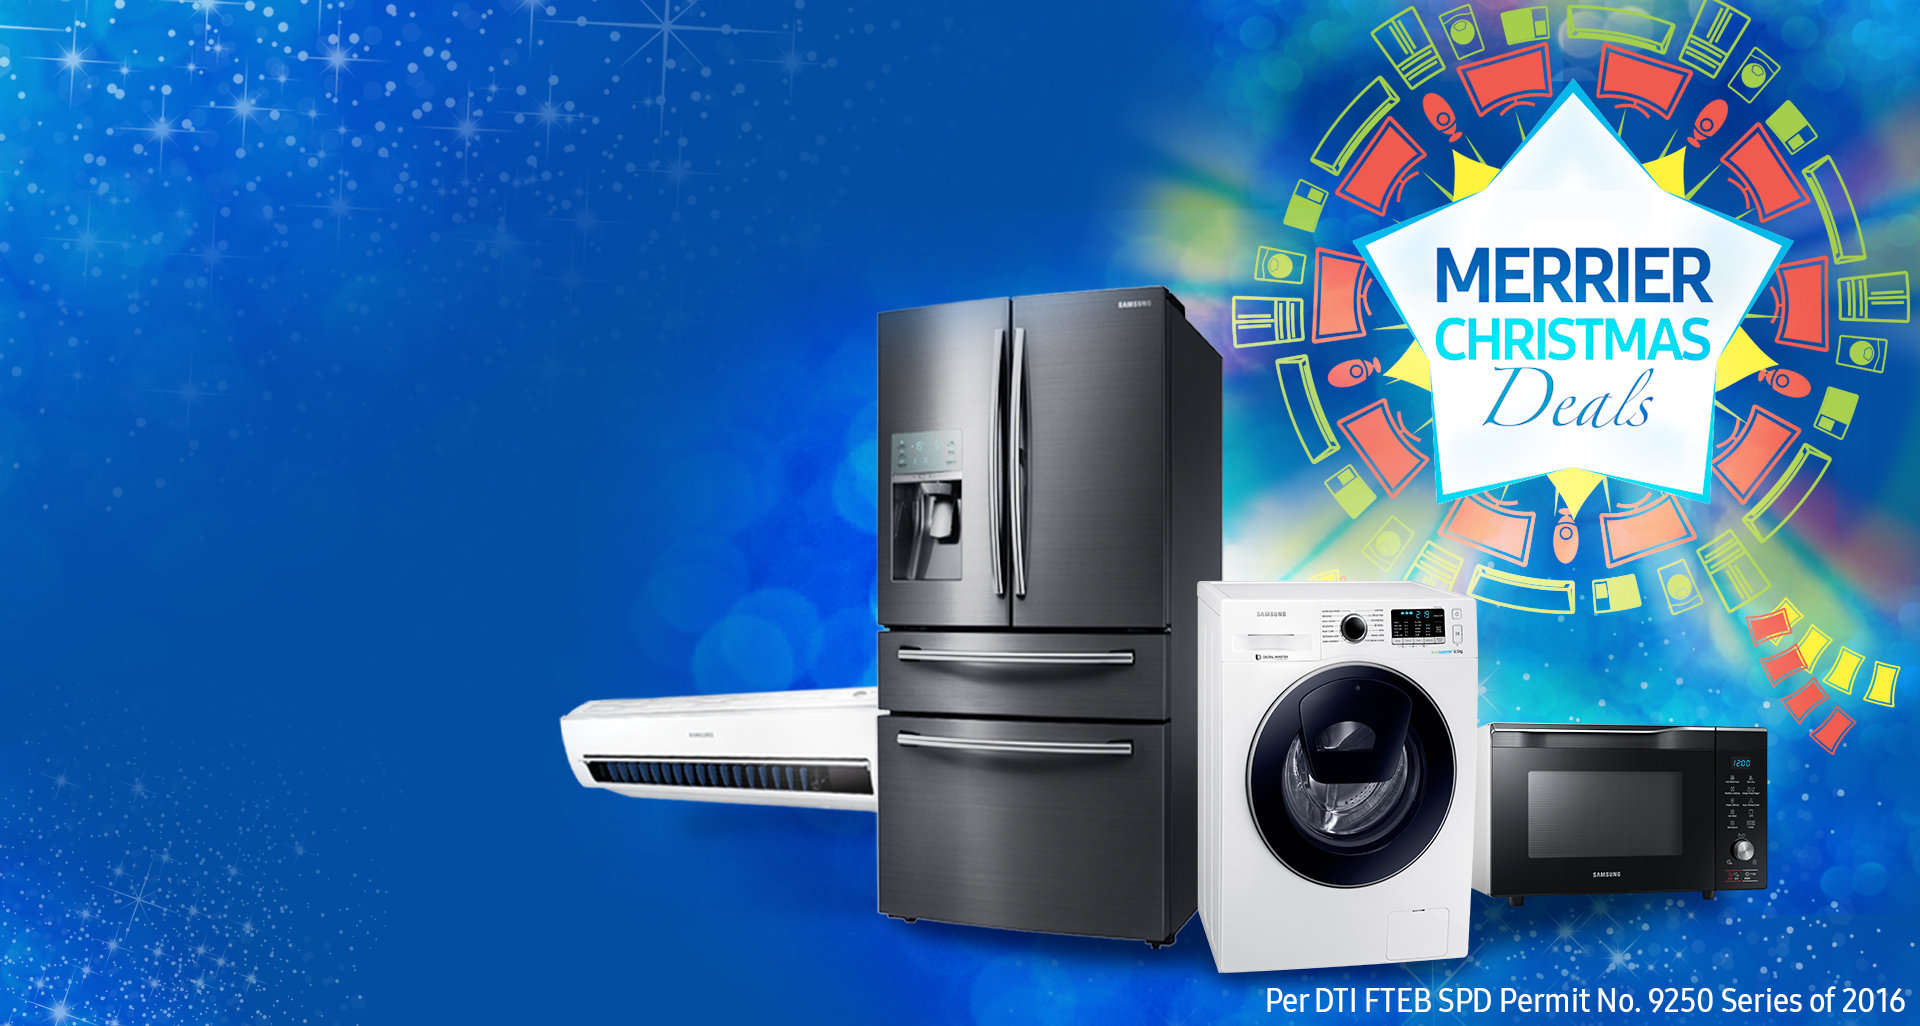 Samsung Digital Appliances Merrier Christmas Deals